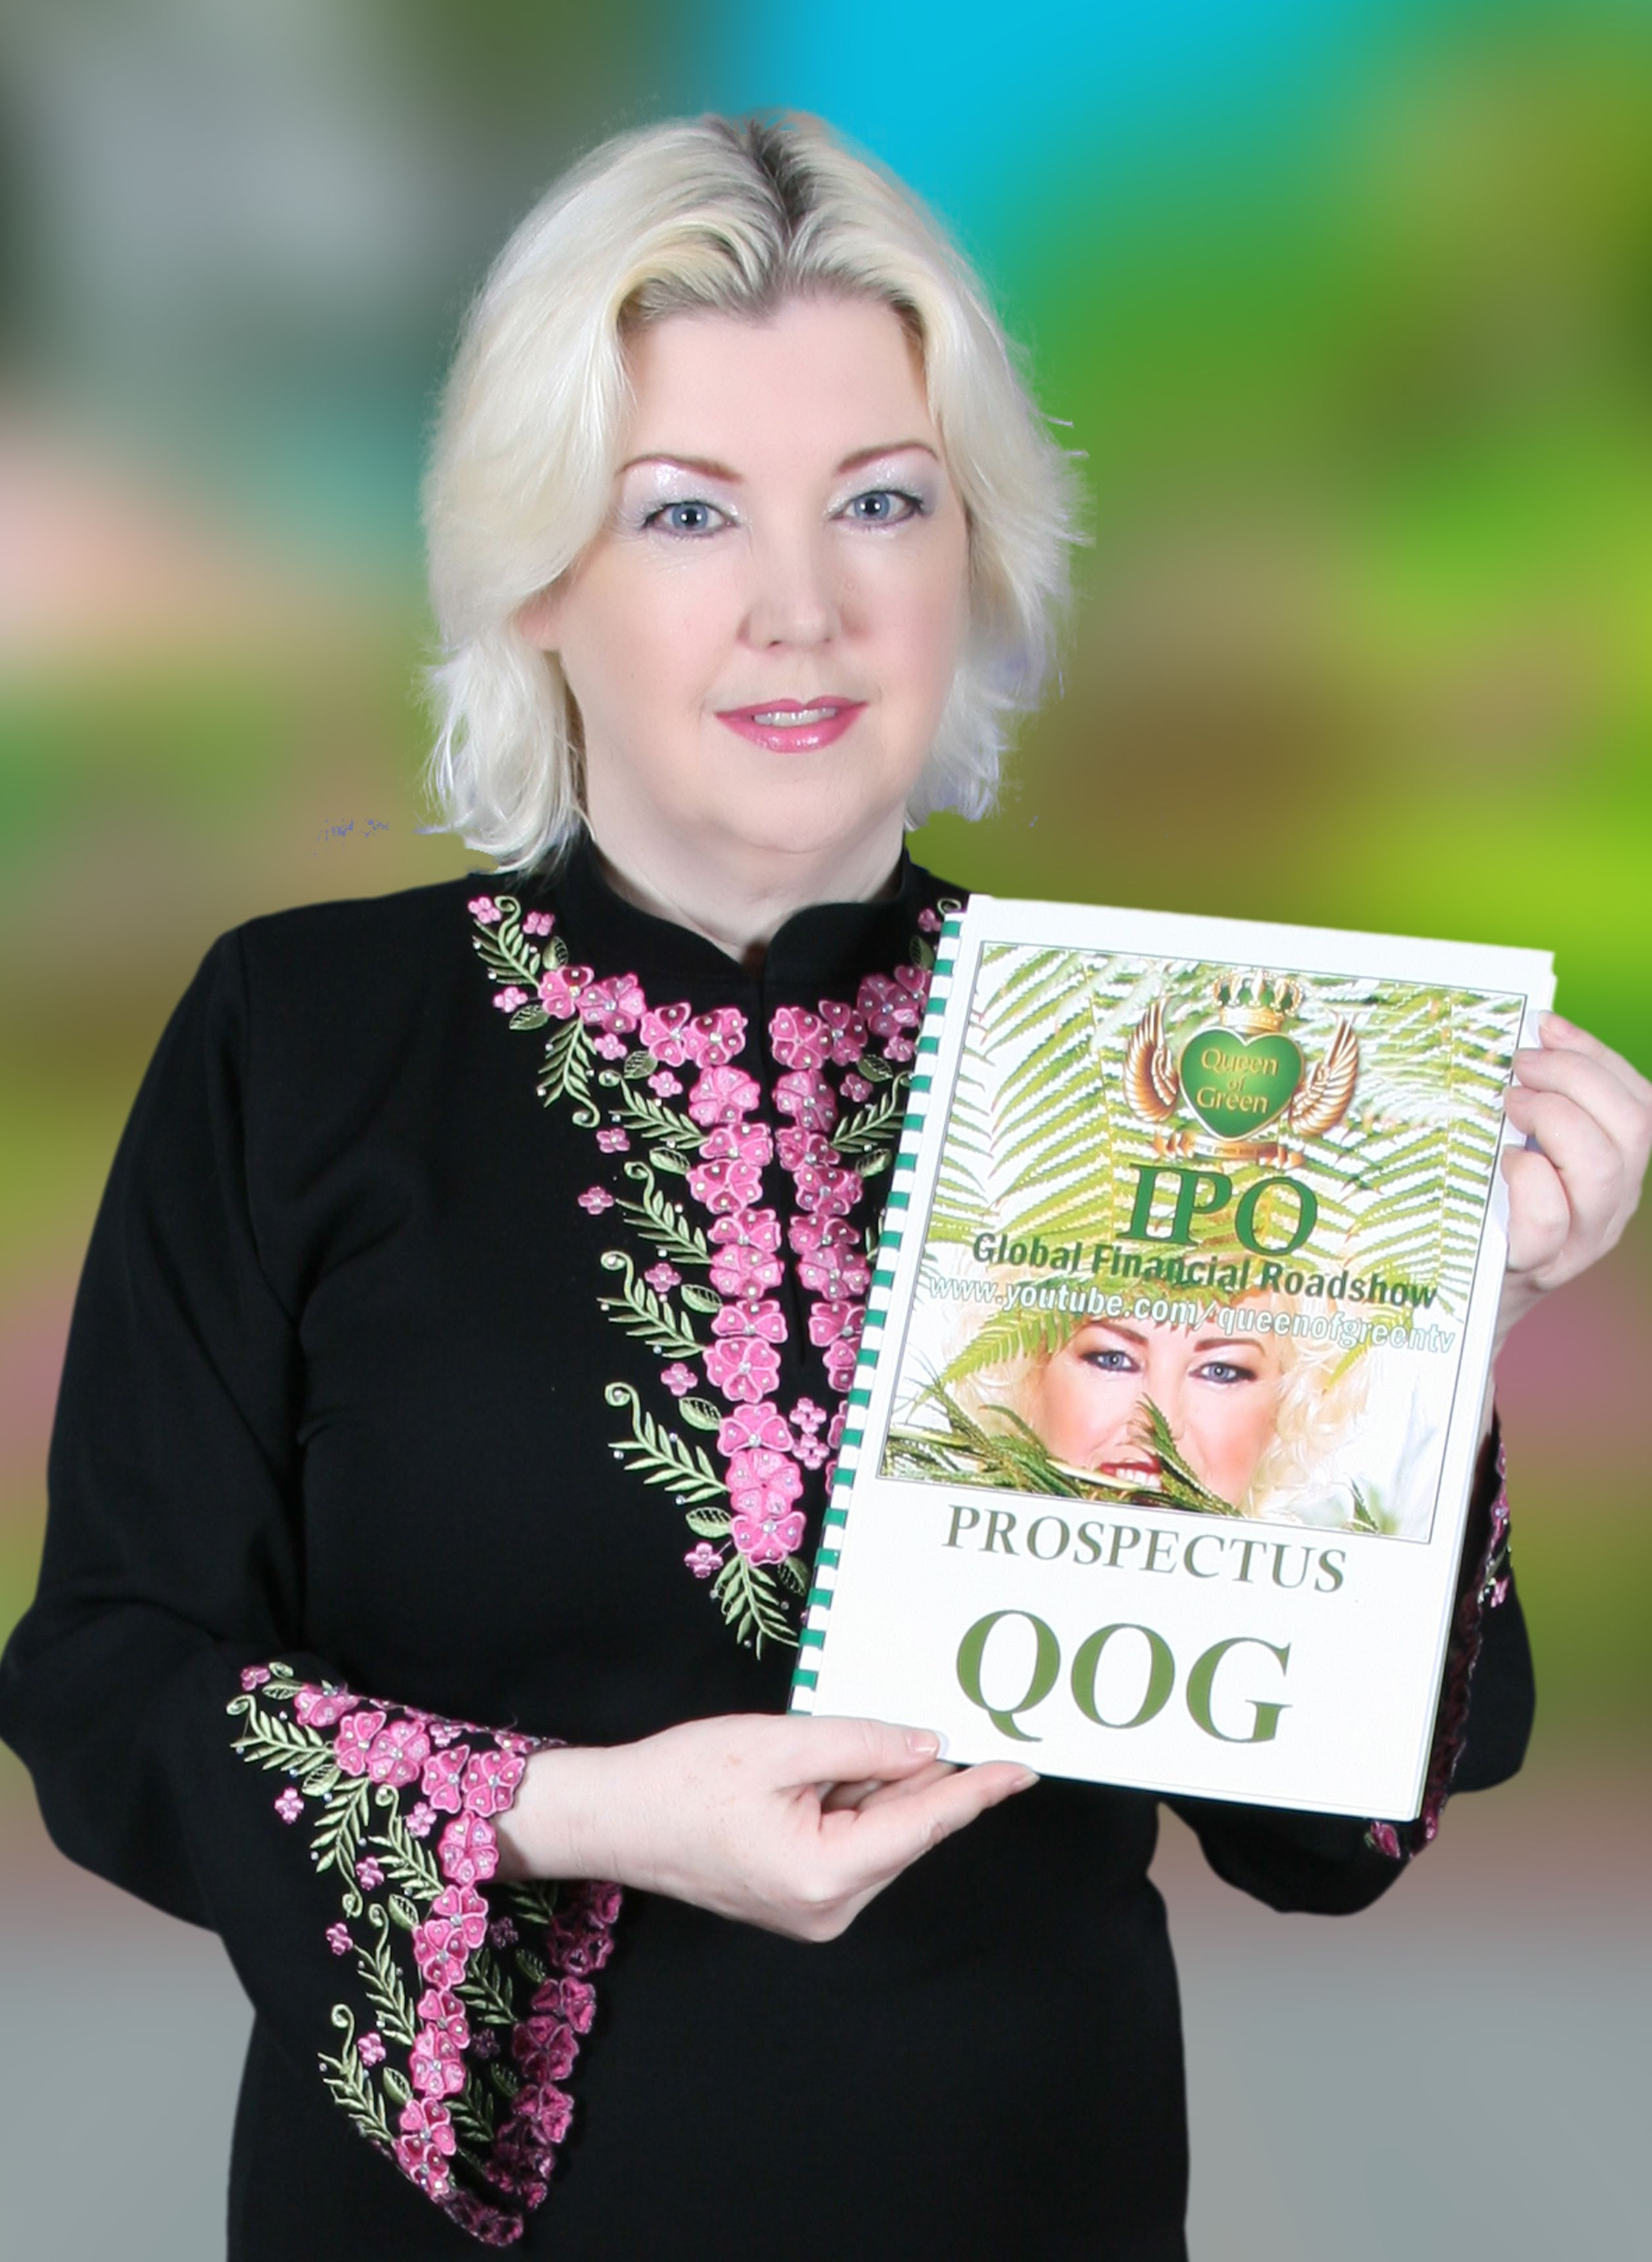 Queen of Green IPO Ticker QOG investing in orphans